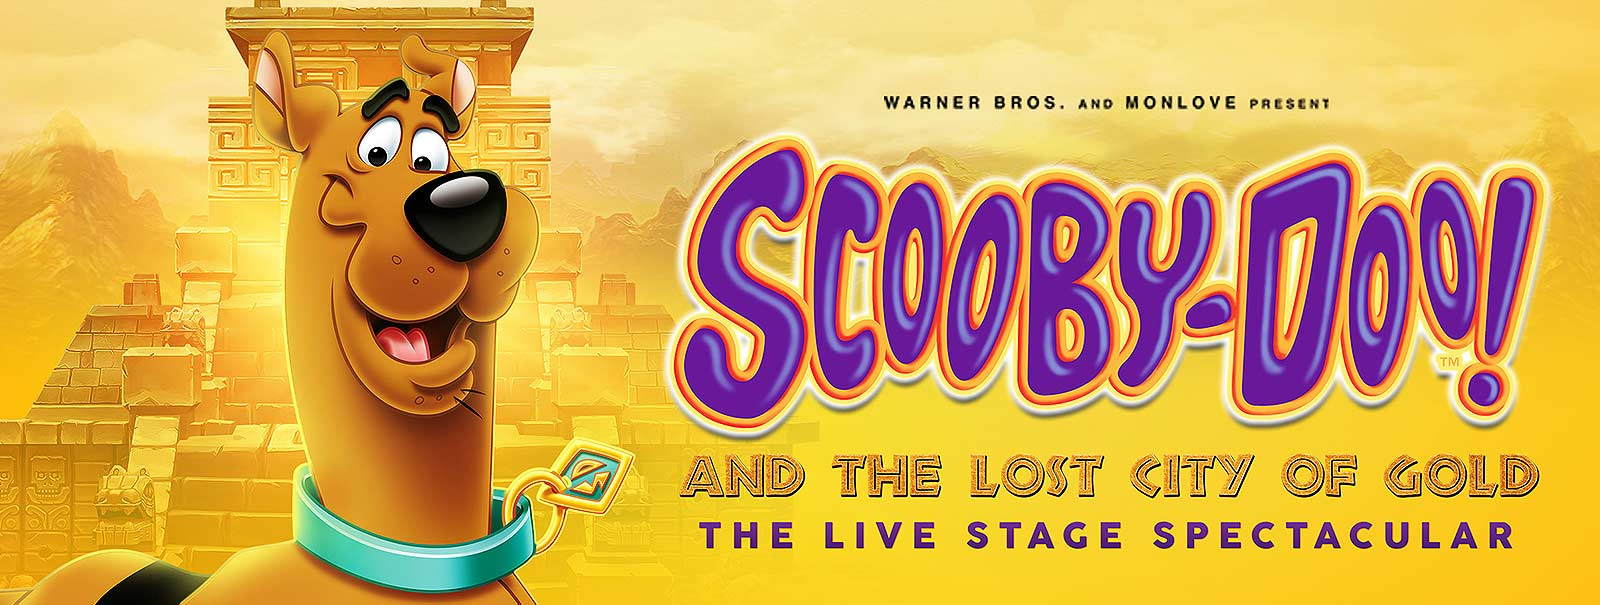 More Info - Scooby-Doo! and The Lost City of Gold